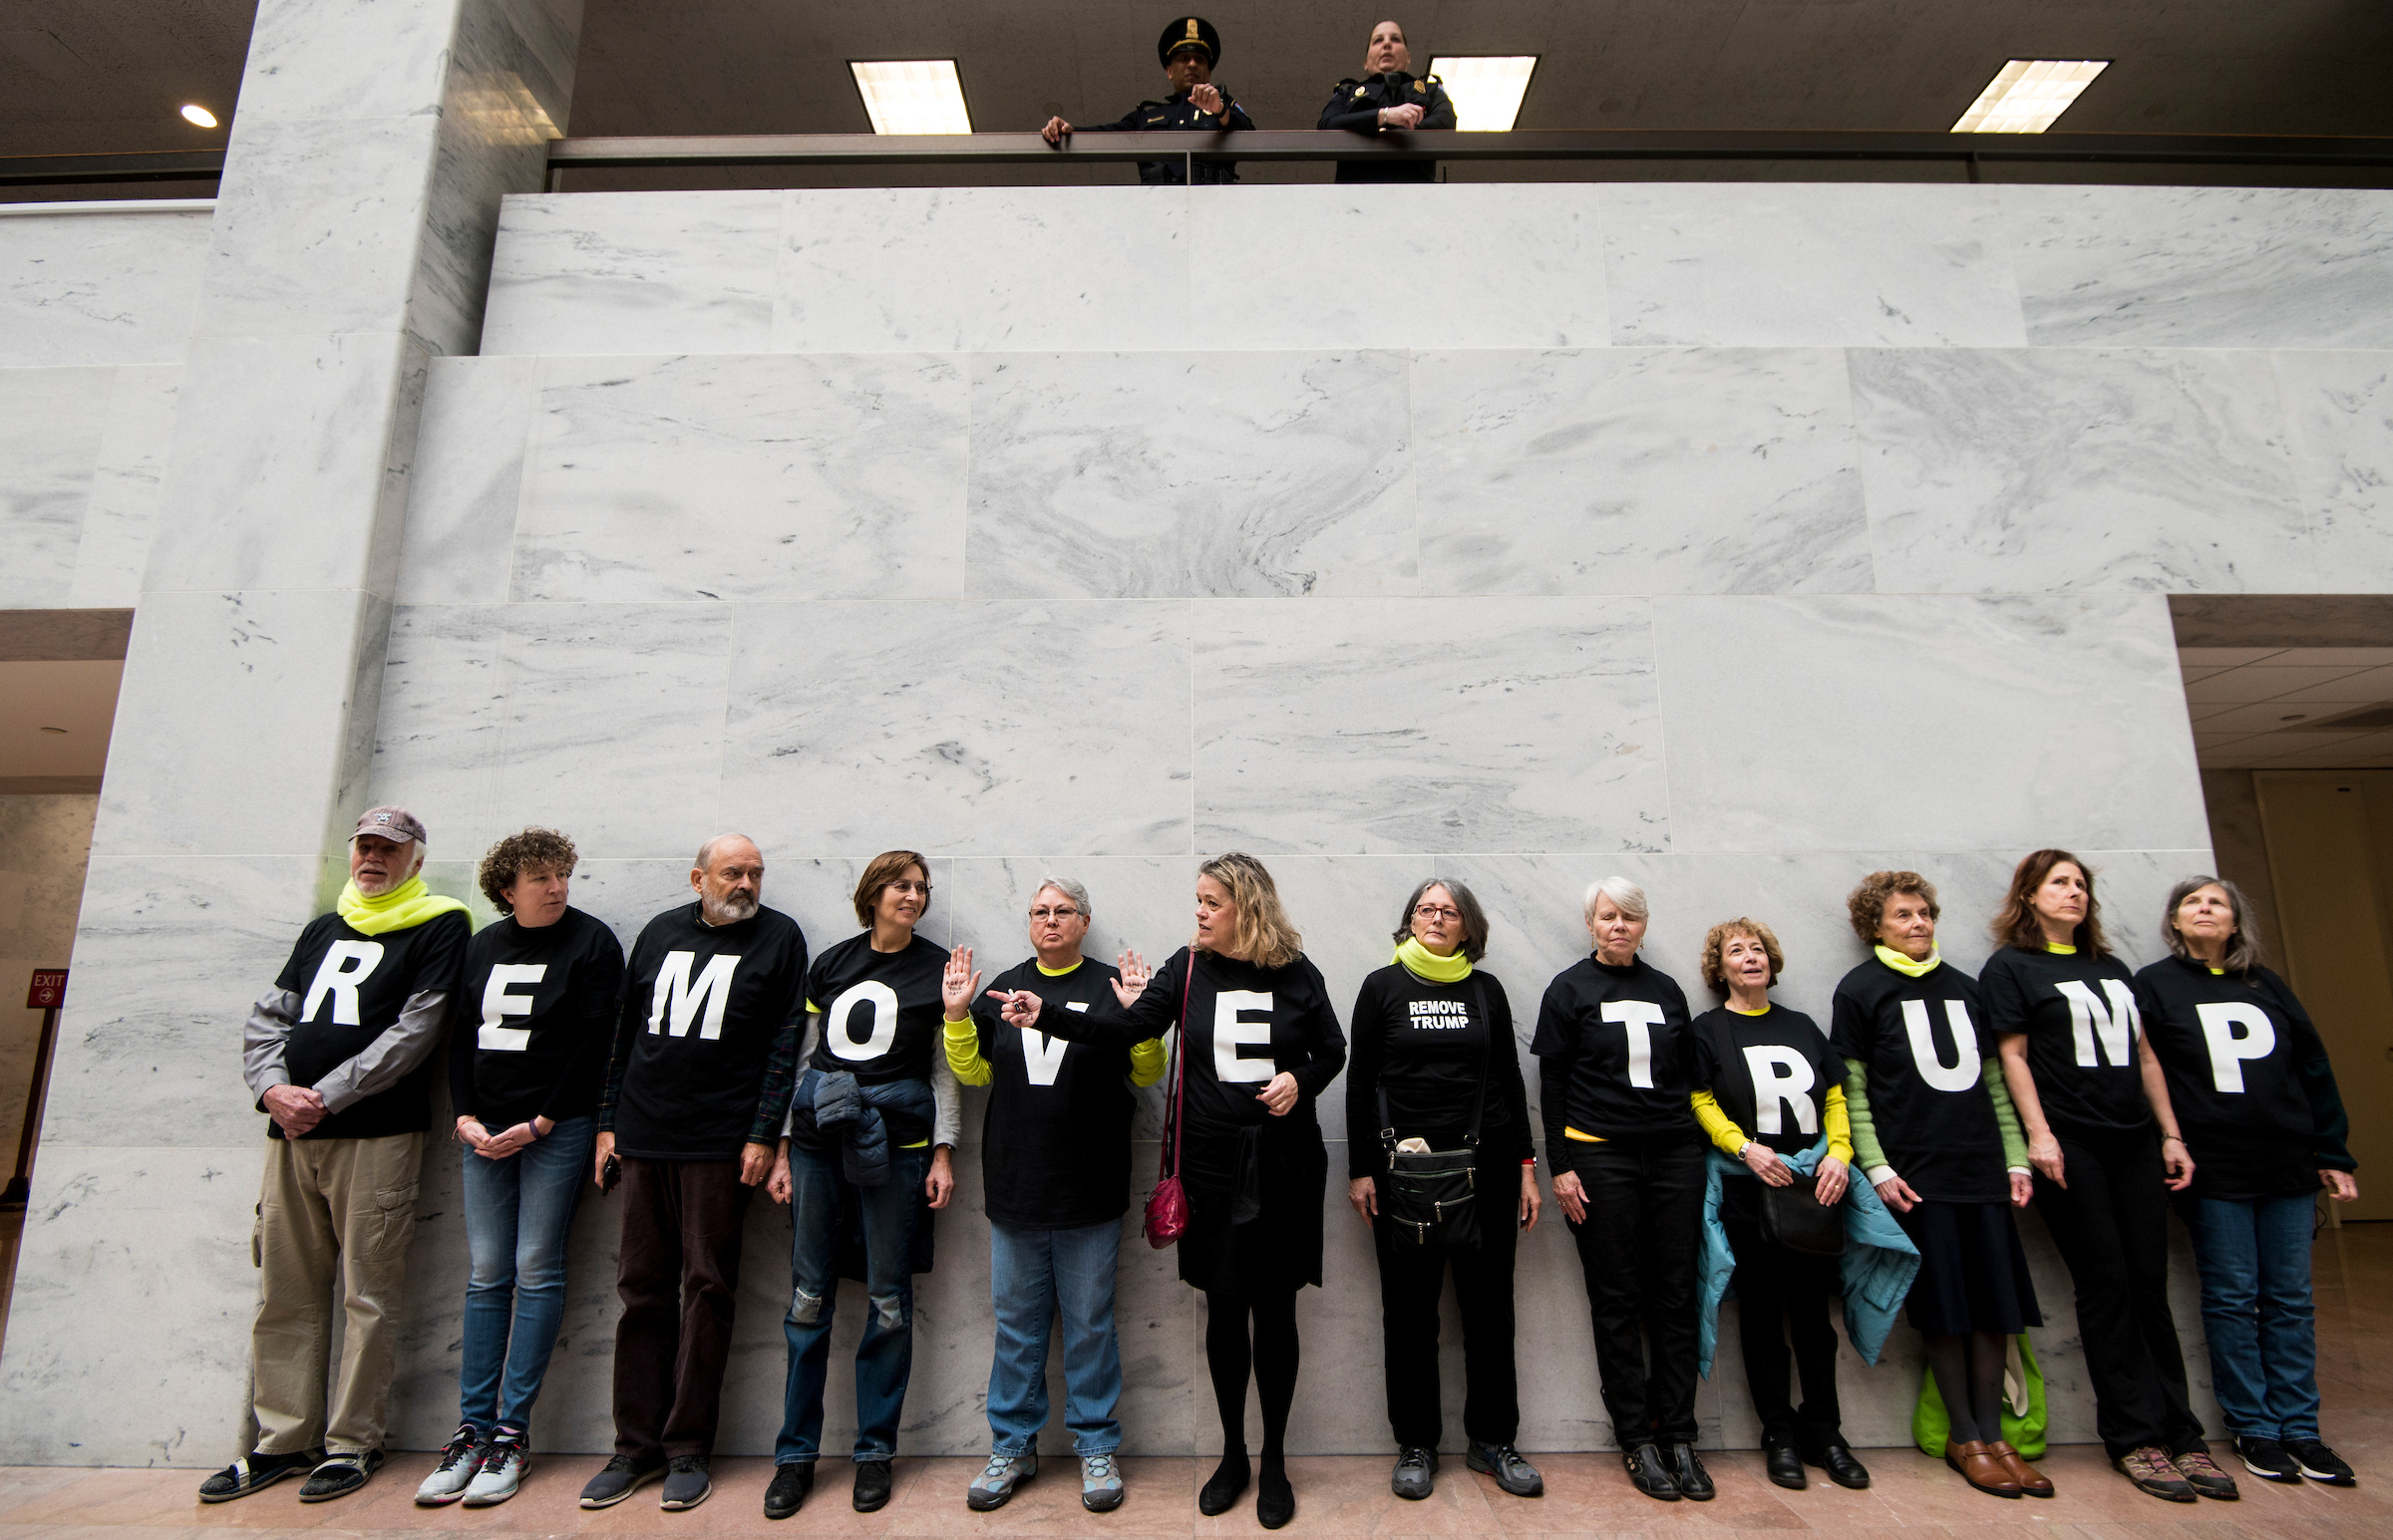 """Protesters participate in the """"Swarm the Senate"""" rally in the Hart Senate Office Building urging action to """"impeach, remove, indict and jail"""" President Trump on Monday. (Bill Clark/CQ Roll Call)"""